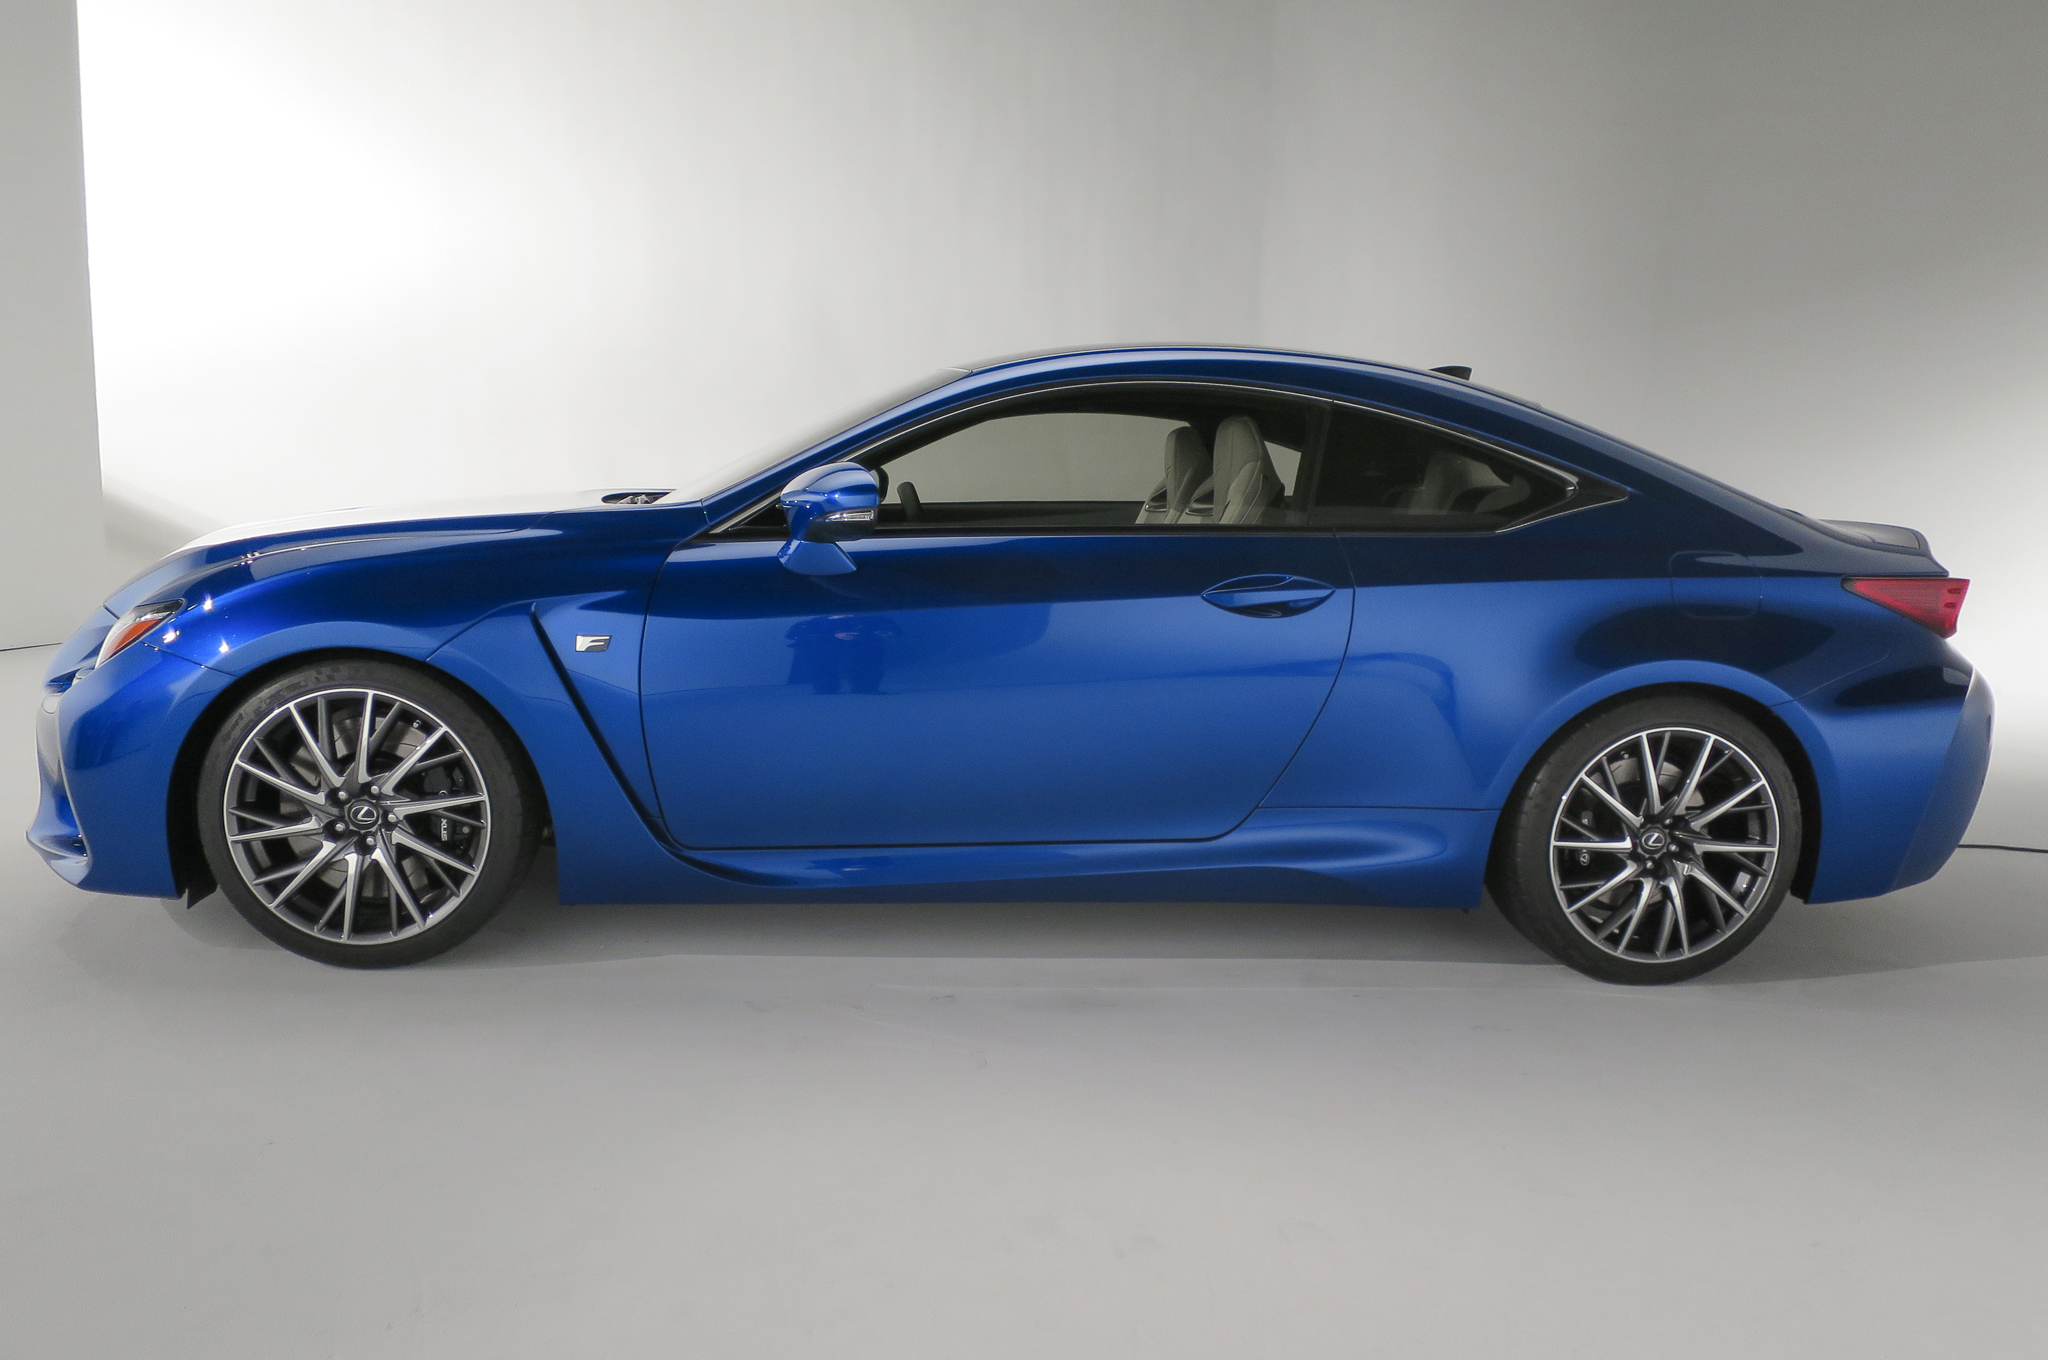 2015 Lexus RC F Side View